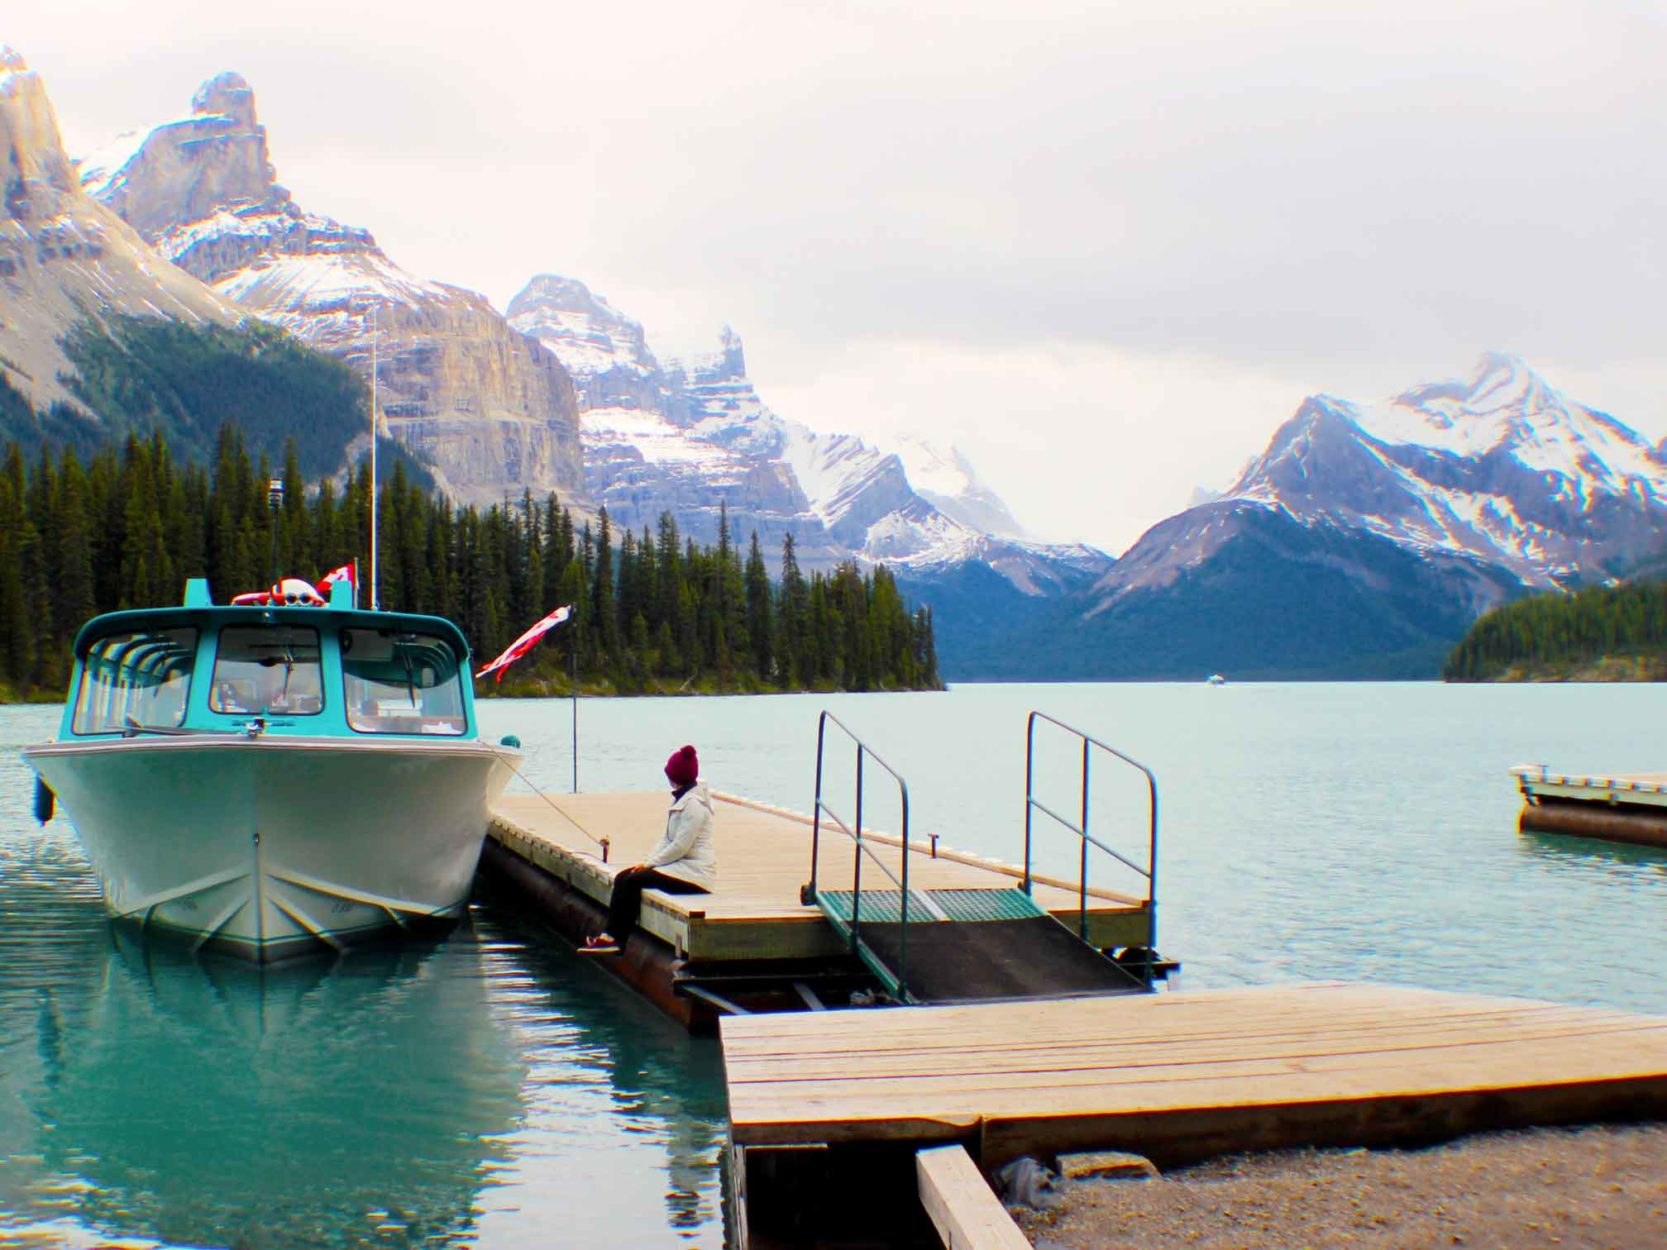 Riding the waves with a Maligne Lake Boat Cruise Main Photo